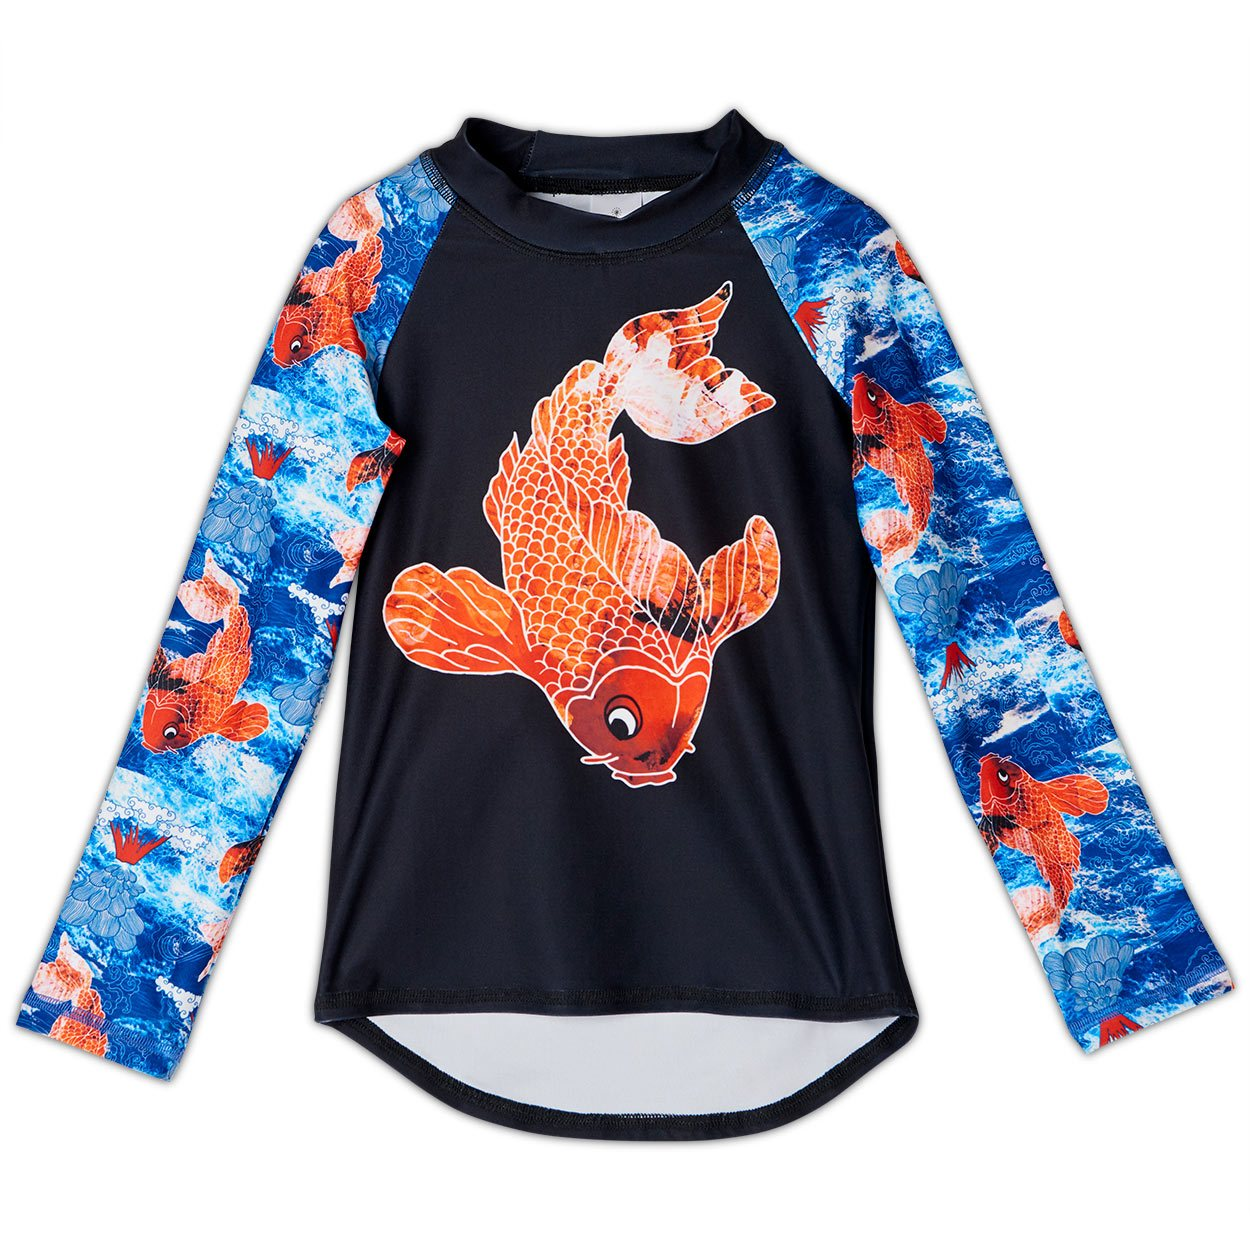 Koi Fish Long Sleeve Rash Guard Top UPF 50+